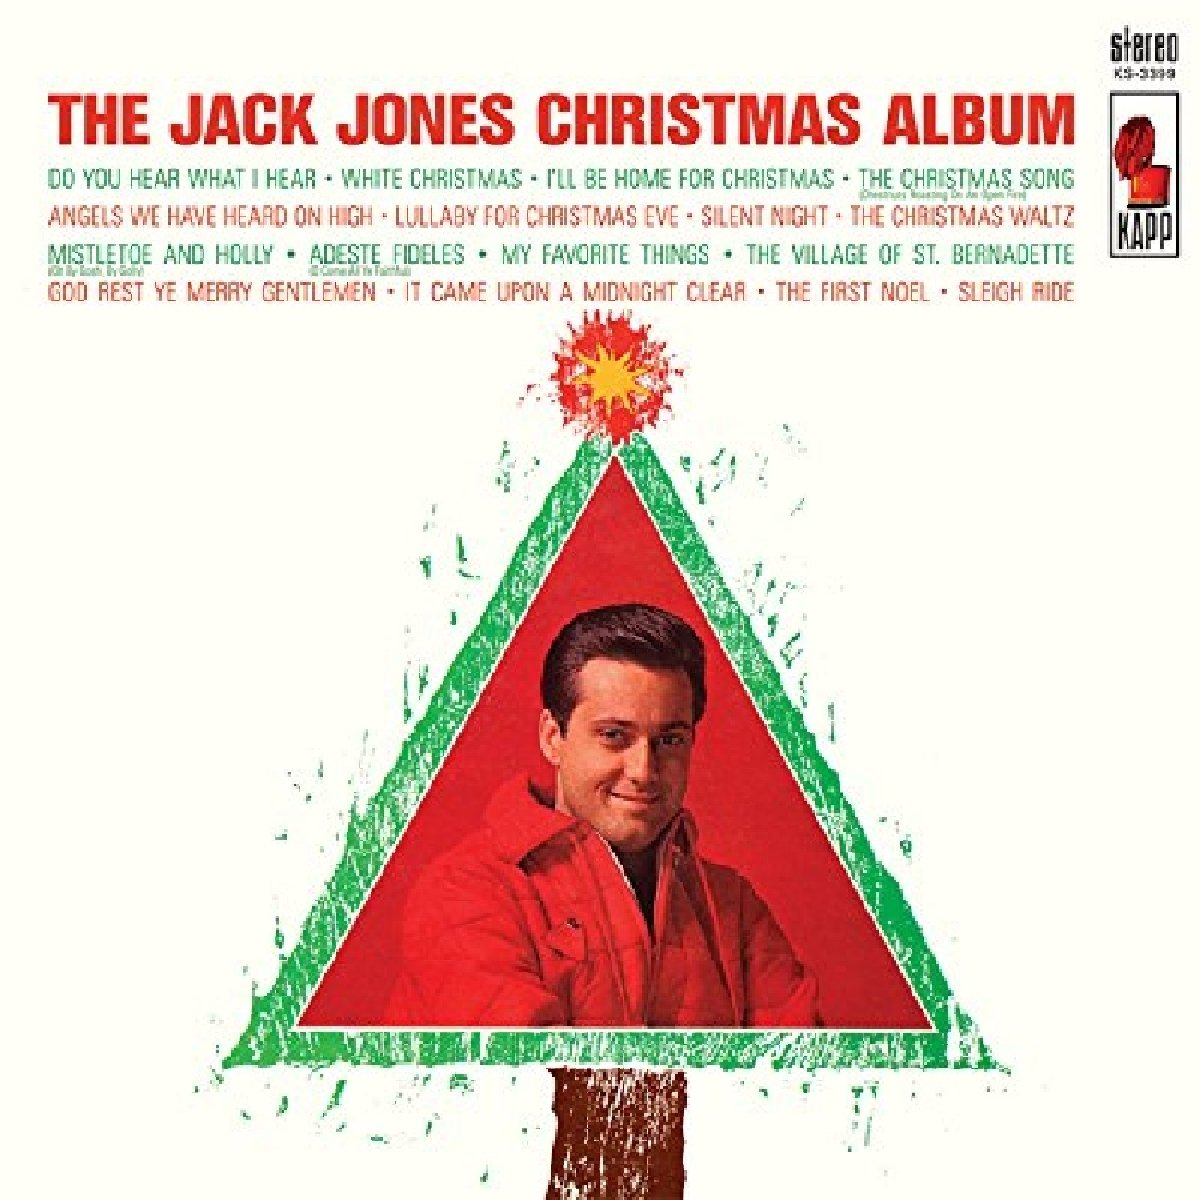 Jack Jones - The Jack Jones Christmas Album - Amazon.com Music